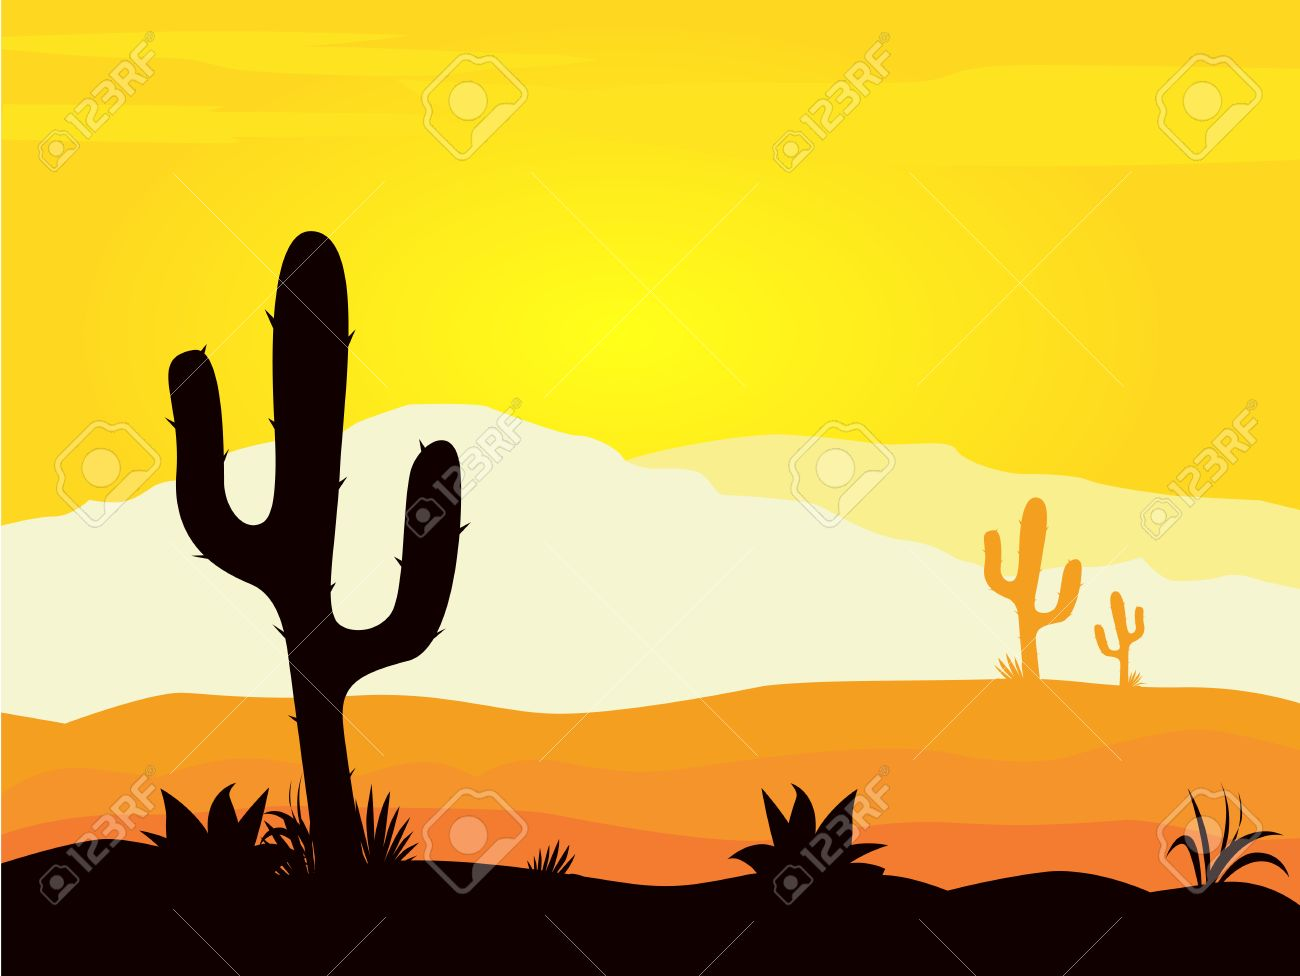 Mexico desert sunset with cactus plants silhouette and mountains. Yellow desert scene with cactus plants, weeds and mountains. Sunset in mexico desert. Stock Vector - 7002331